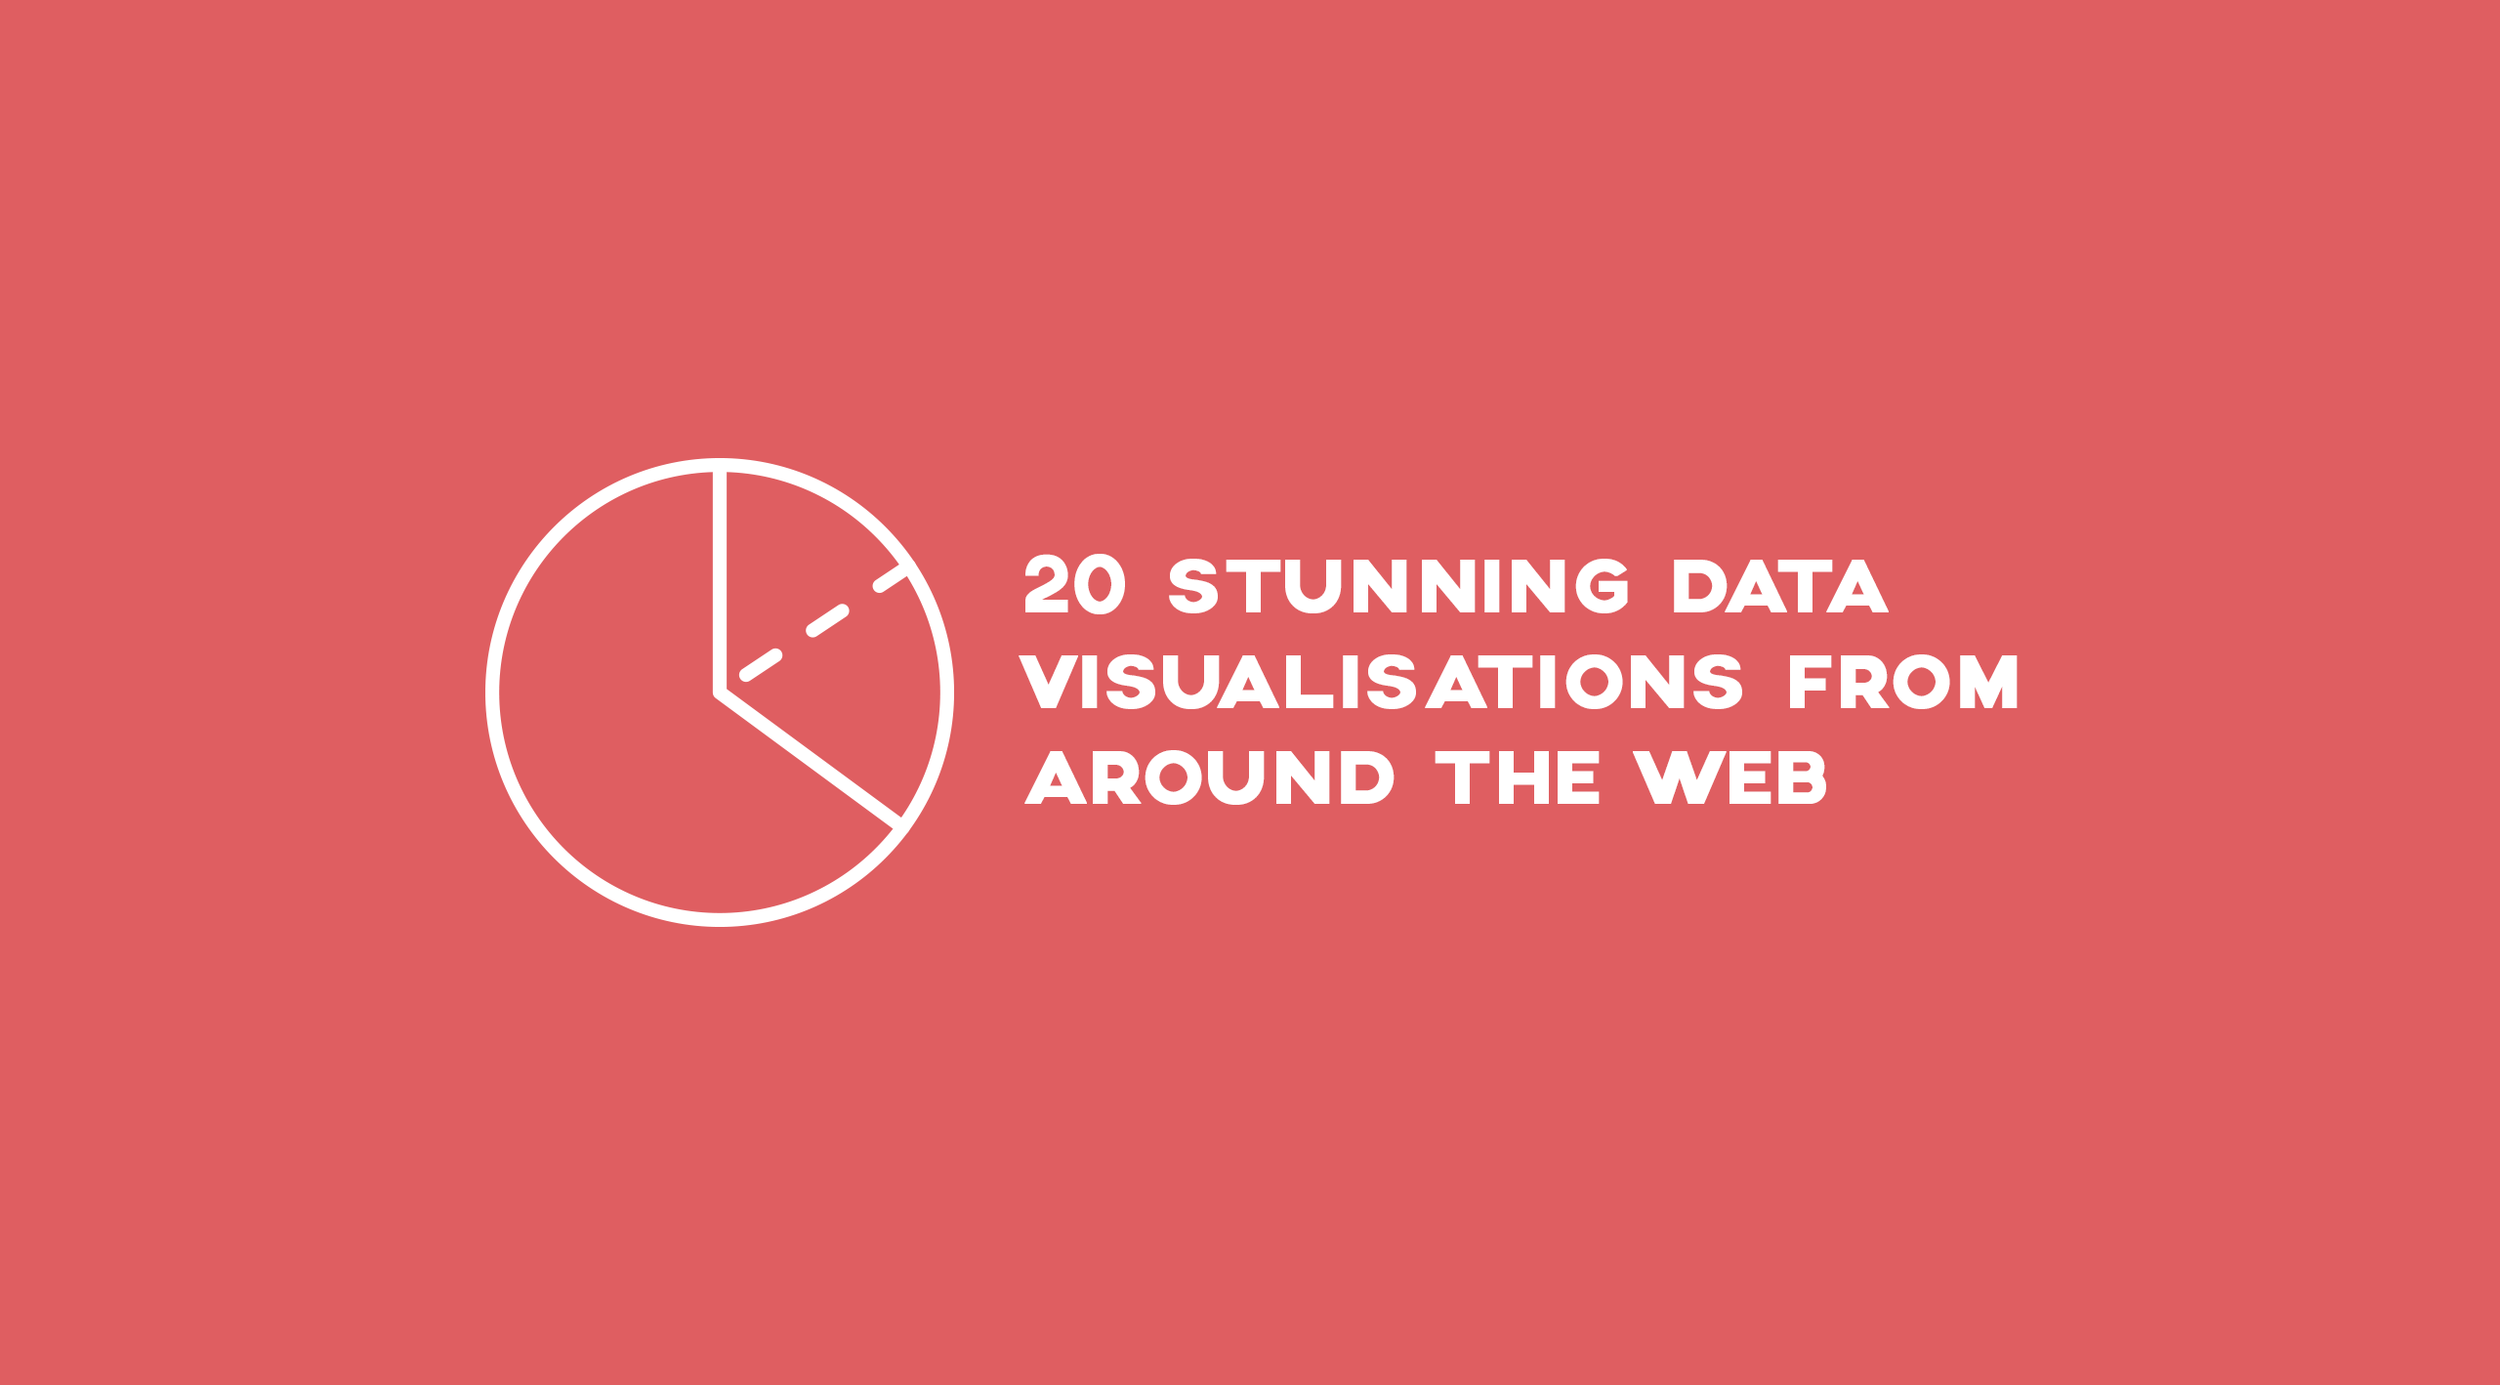 20 Stunning Data Visualisations From Around the Web.png